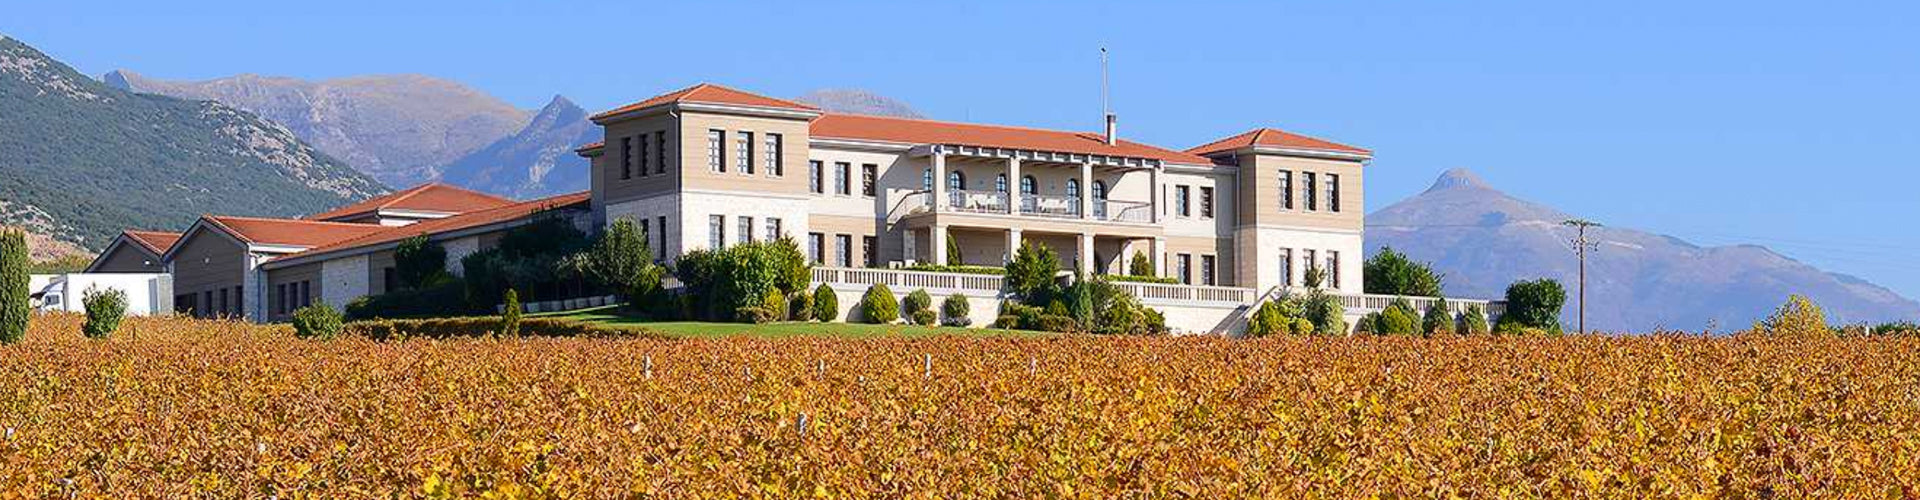 Ktima Biblia Chora Winery & Vineyards